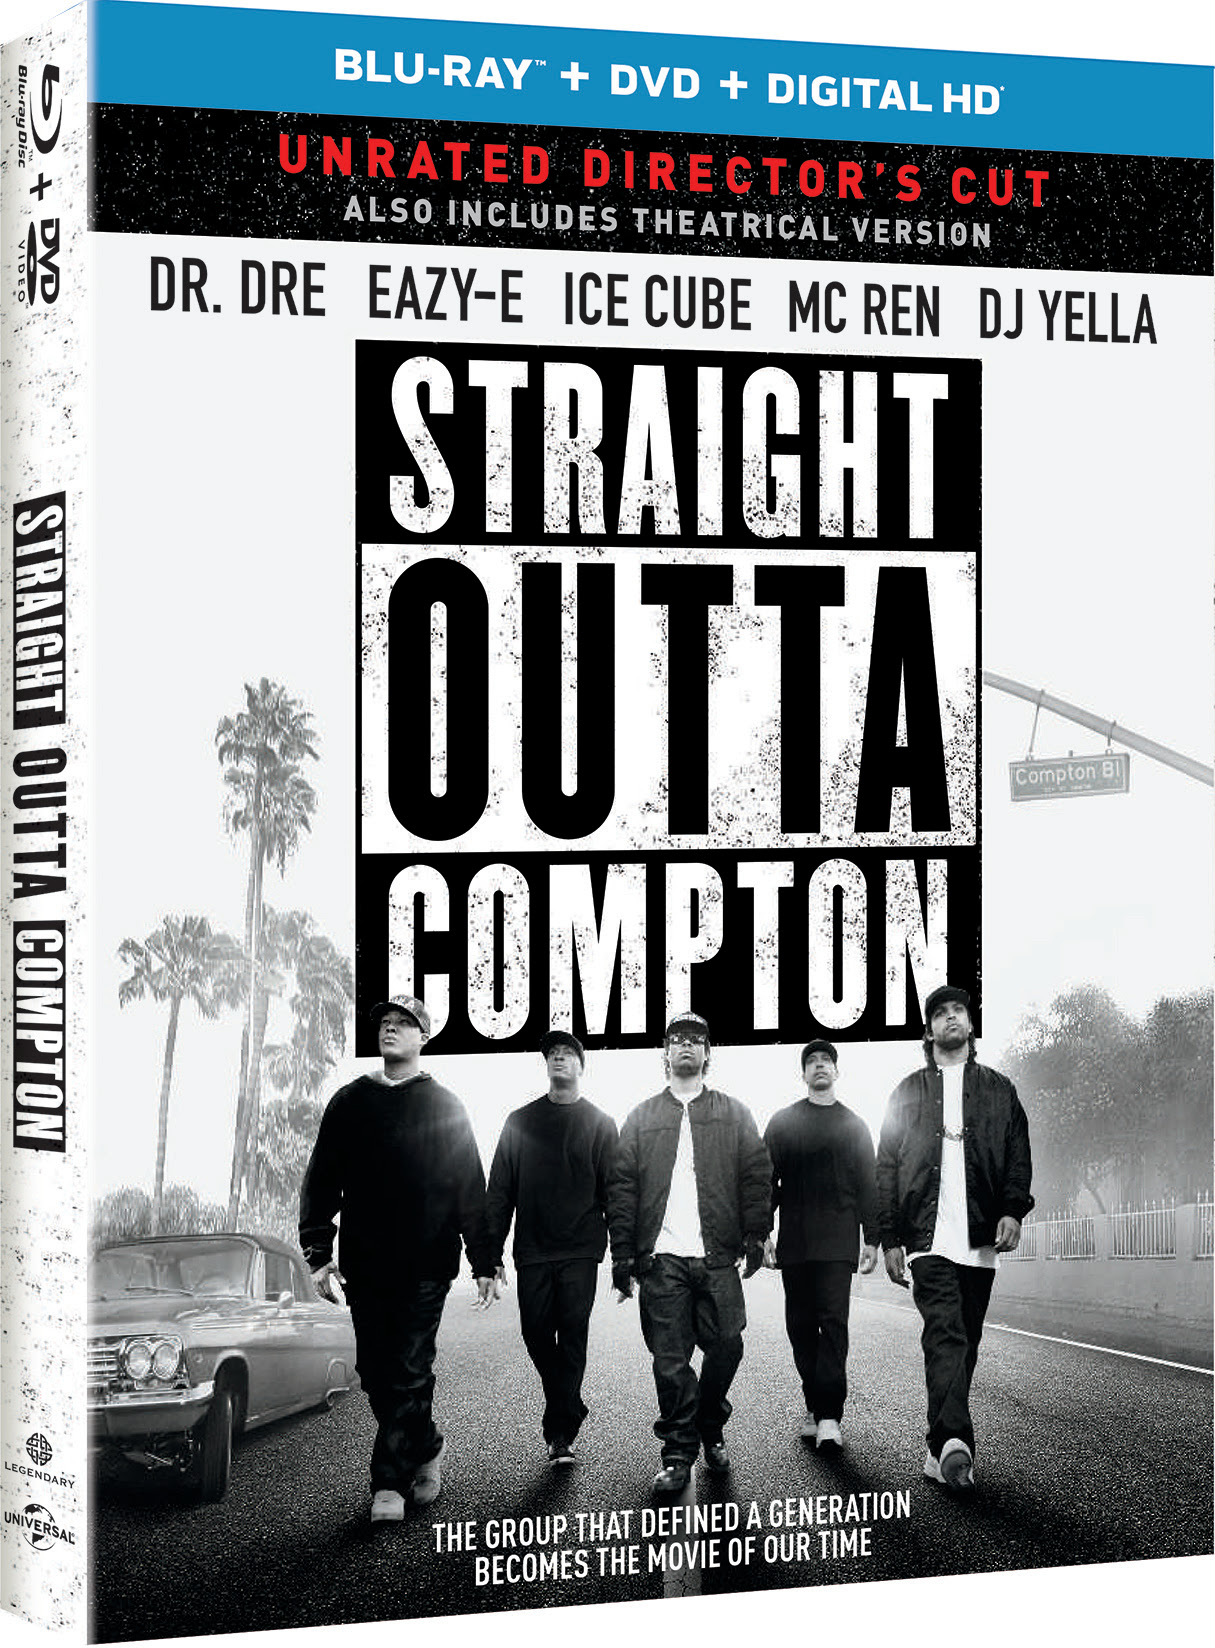 Straight Outta Compton Blu-ray Review